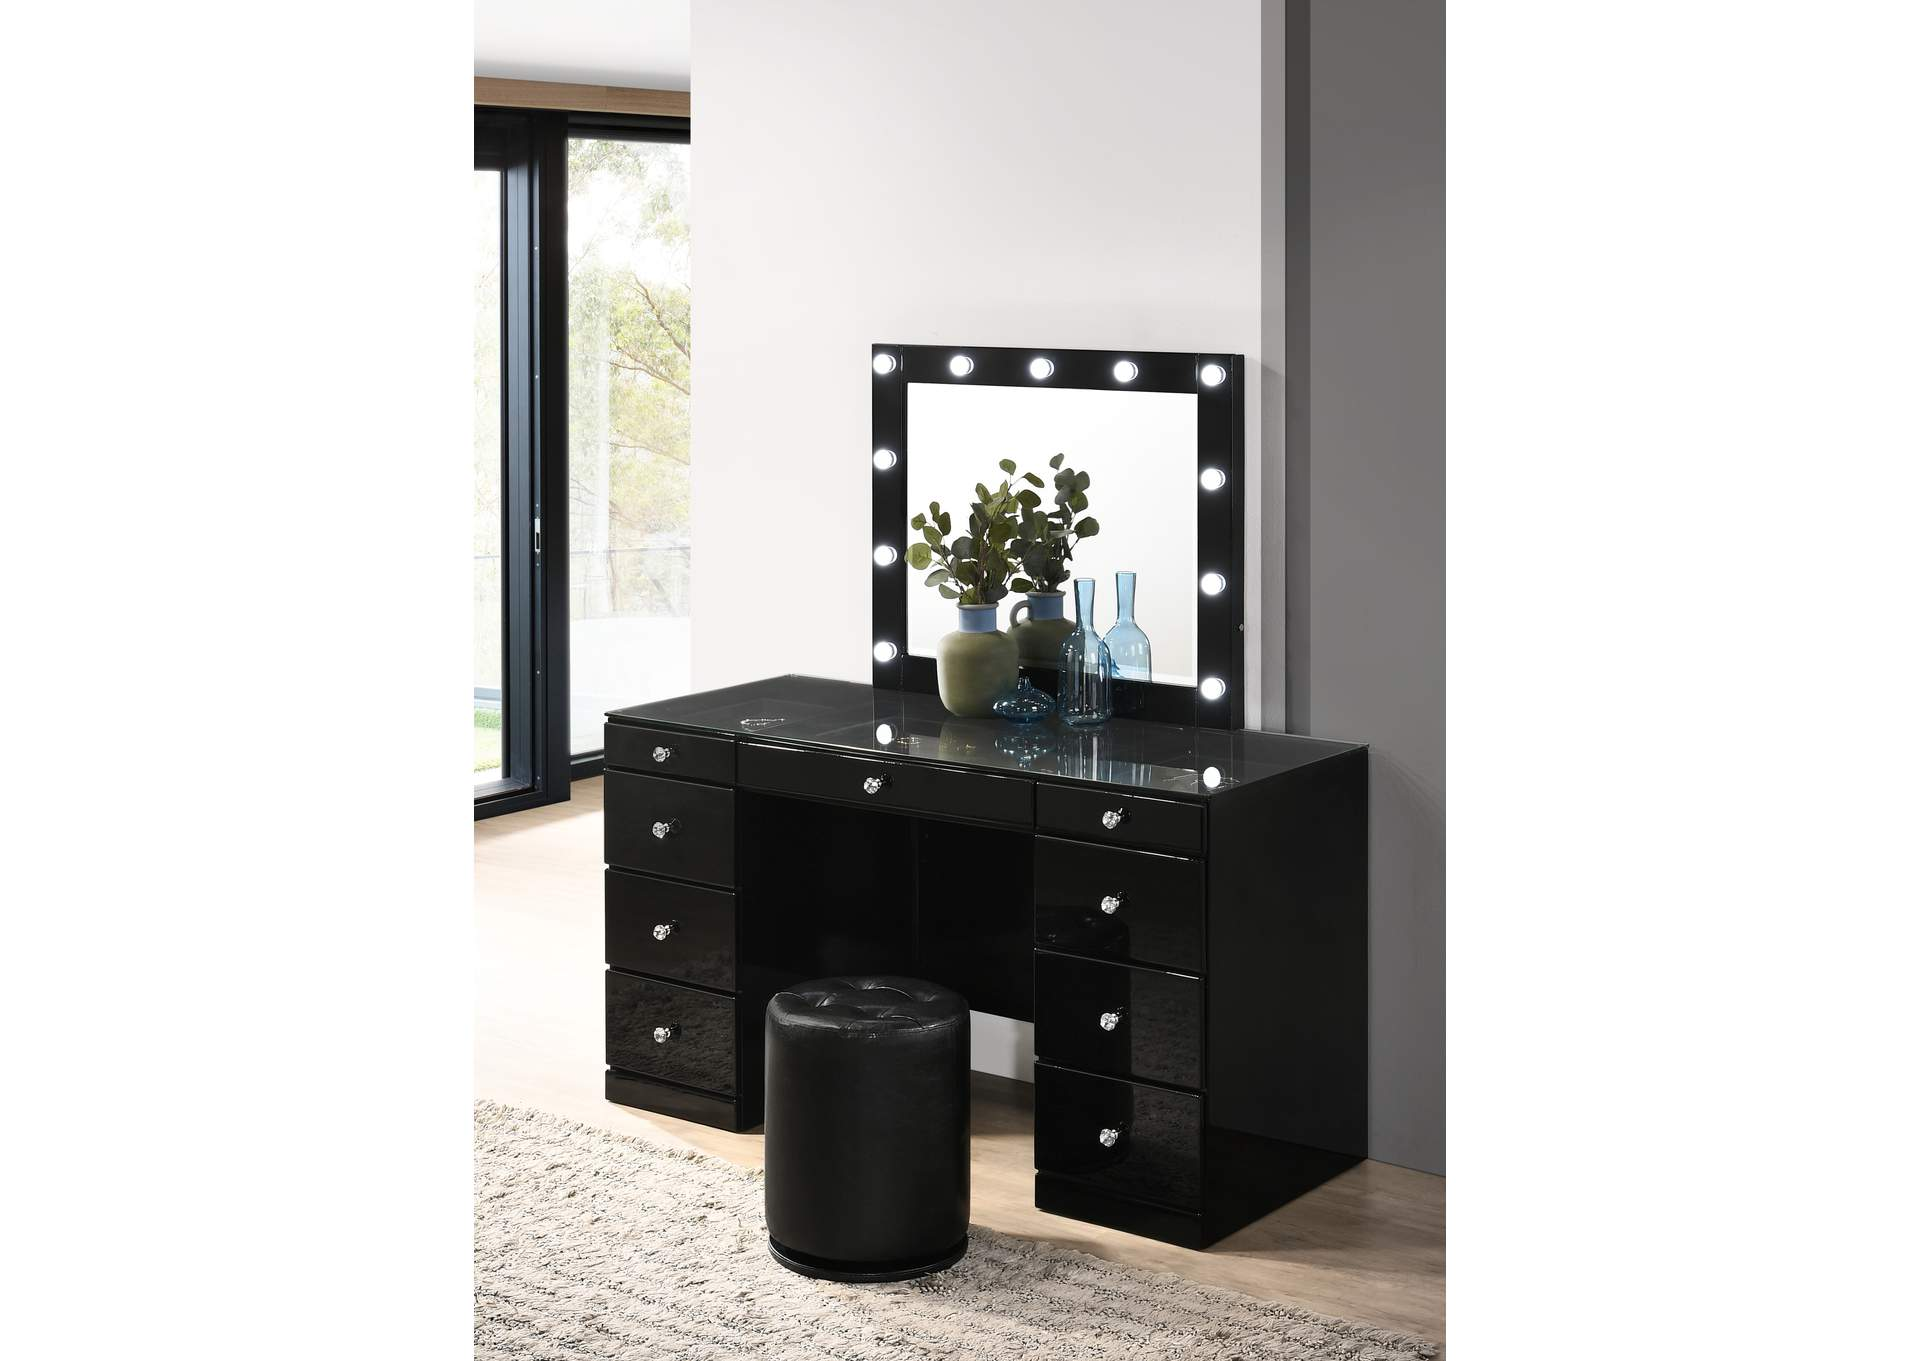 Avery Black Vanity Set W/ LED,Crown Mark